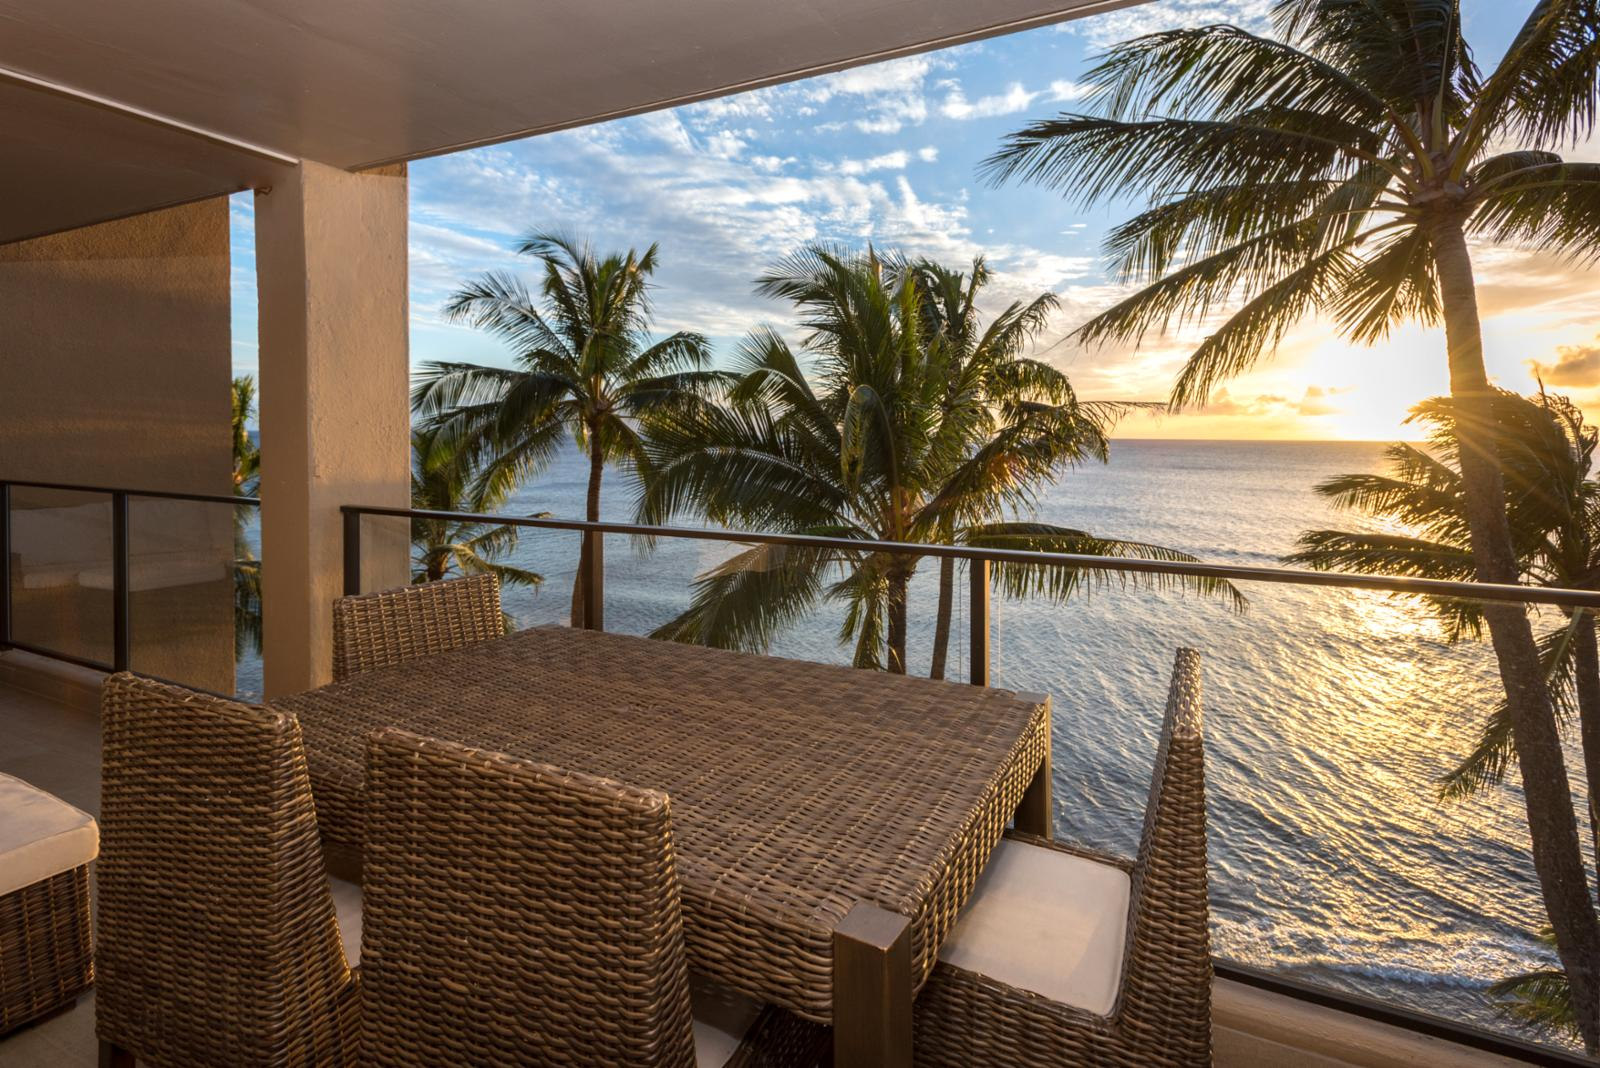 Stunning sunset views from your private balcony